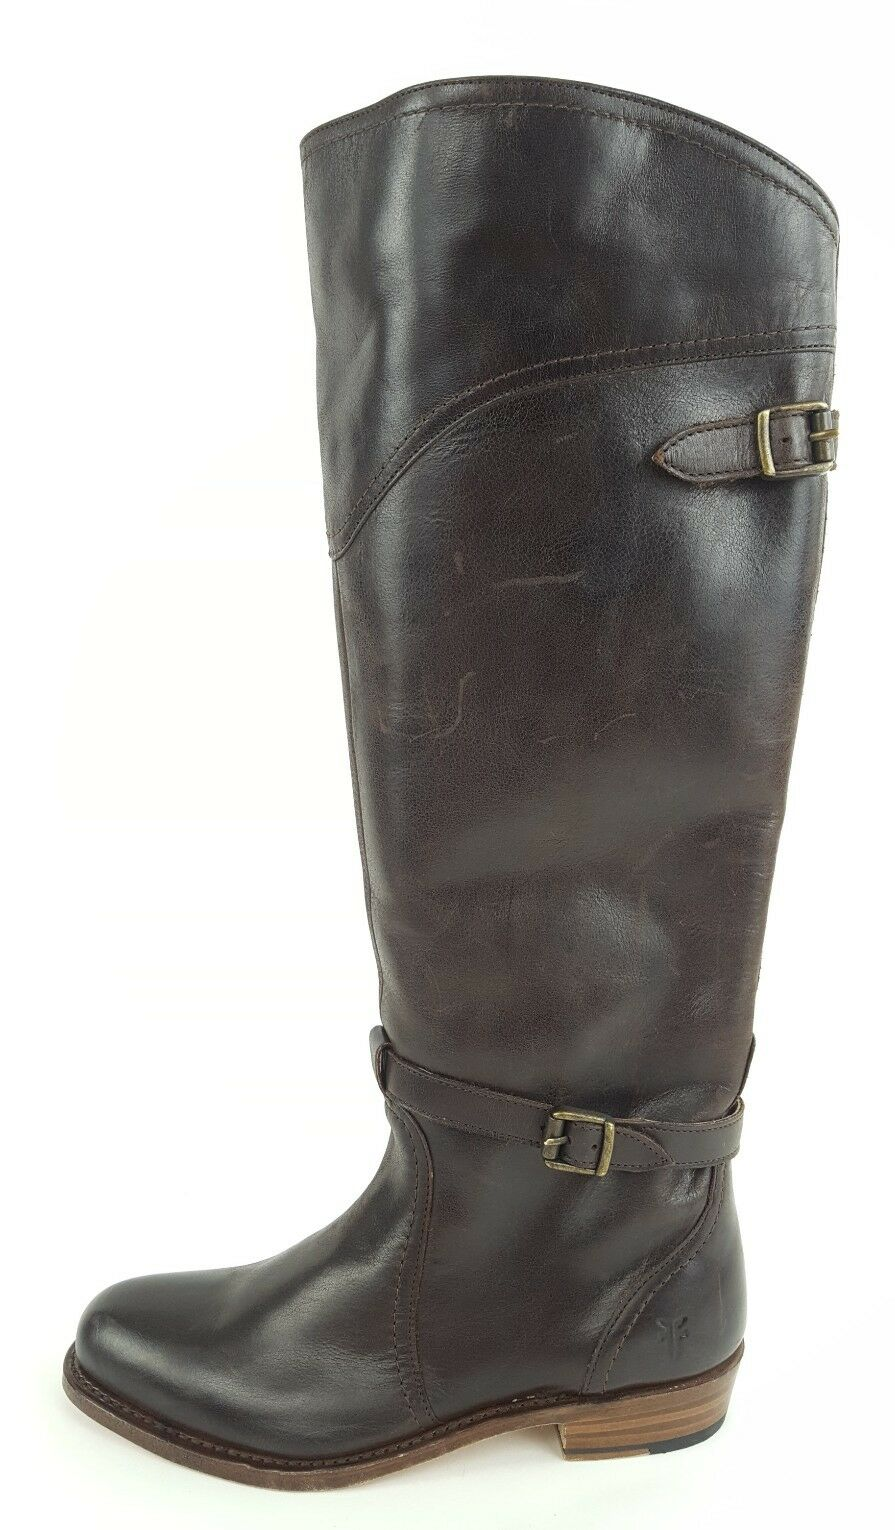 Size 7 M Frye 'Dorado' Women's Riding Boots Dark Brown Polished Leather